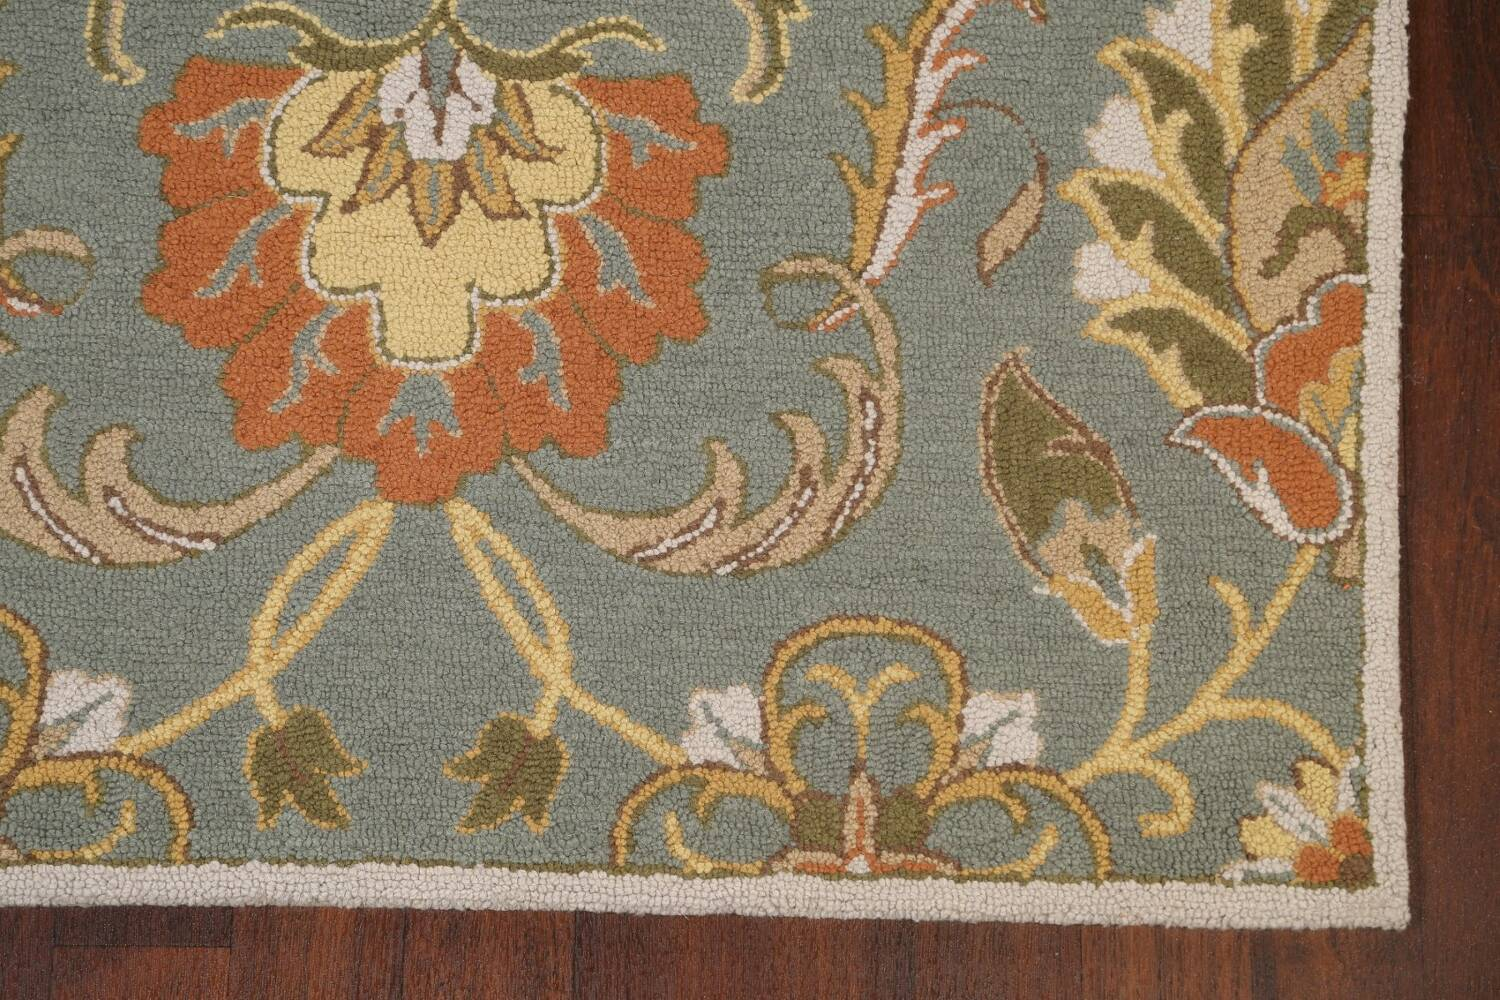 Hand-Tufted Floral Agra Area Rug 5x8 image 6